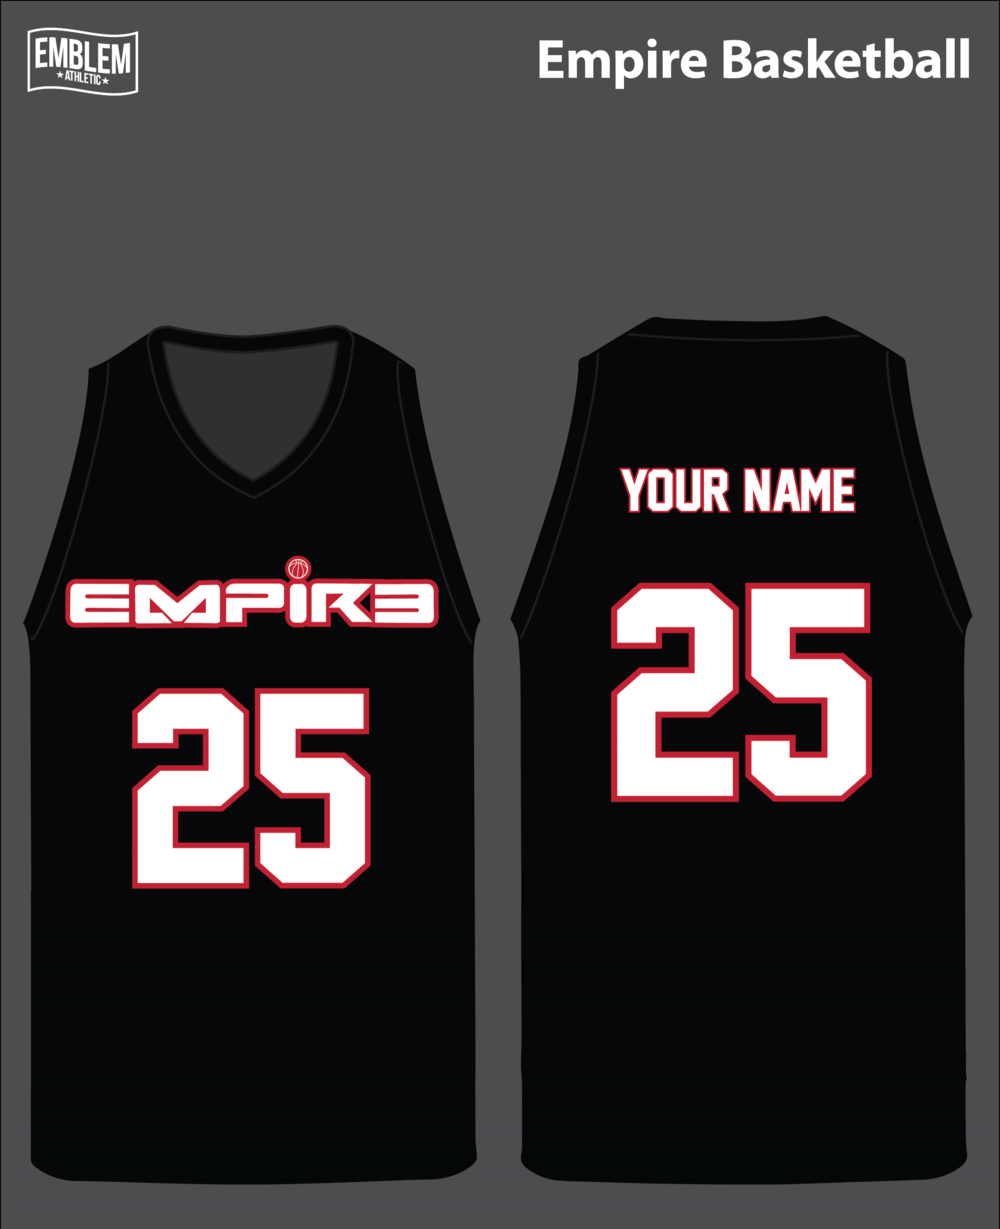 Empire Basketball - Click the image or title to view the Empire Basketball artwork & store